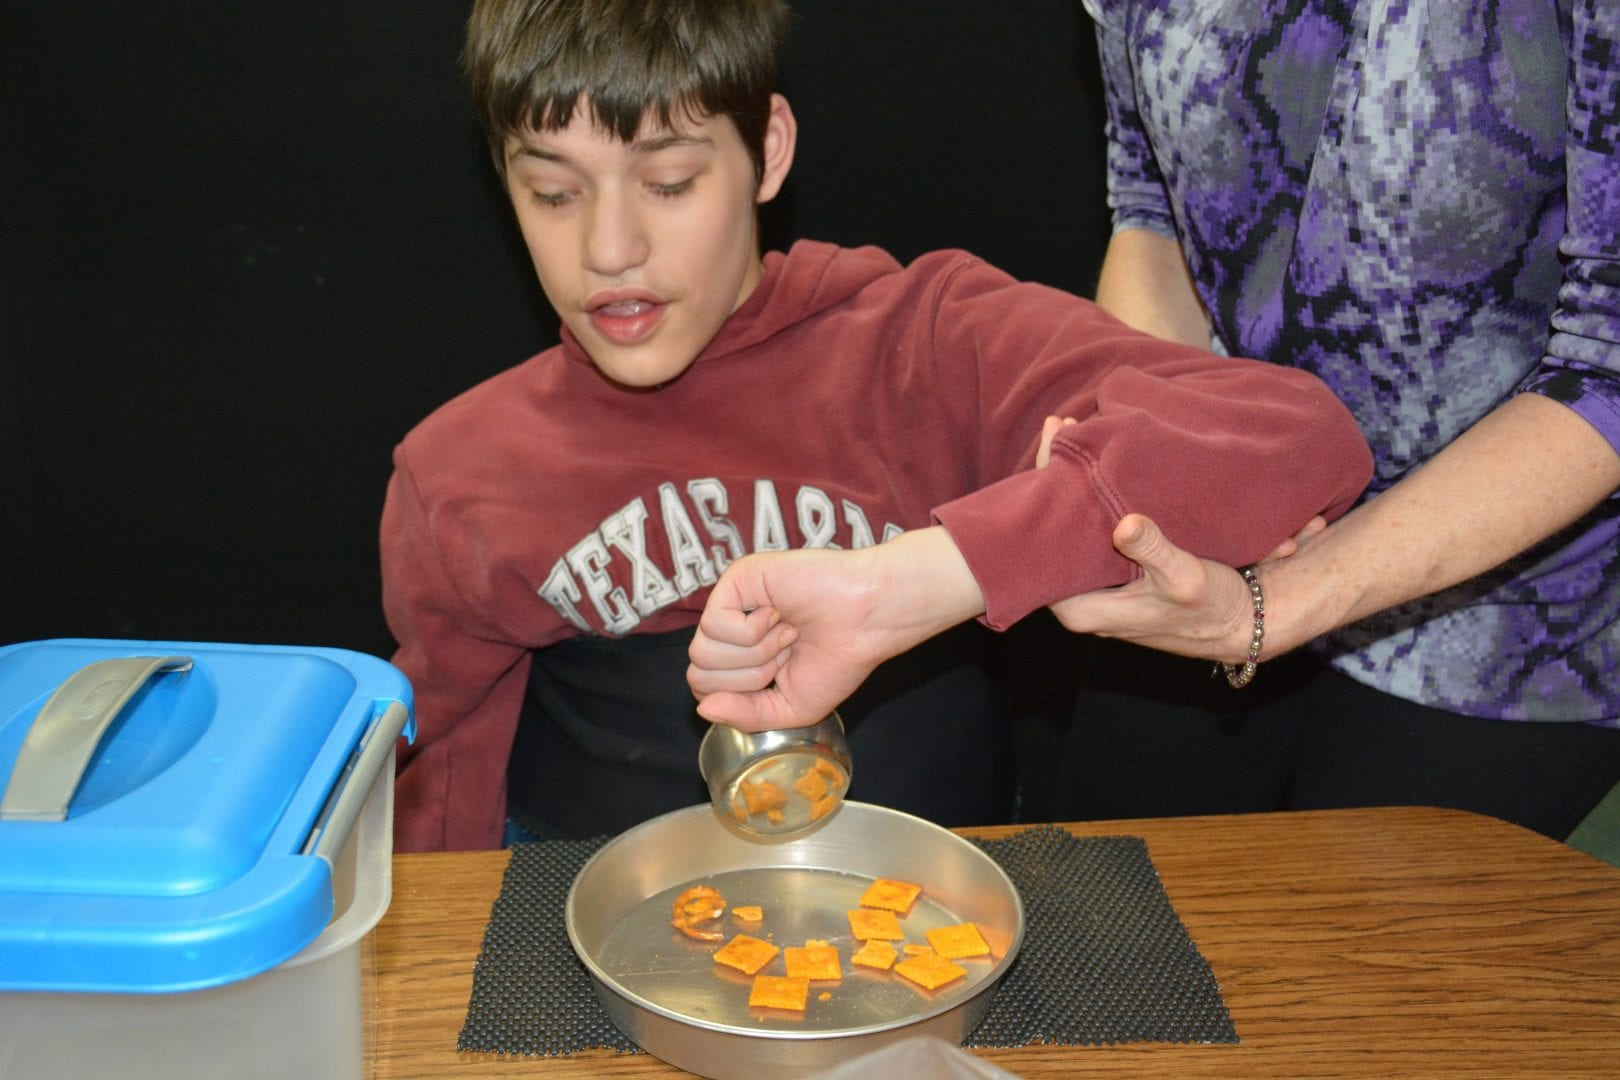 A teacher provides elbow support as a learner uses a measuring cup to pour his snack into a pan